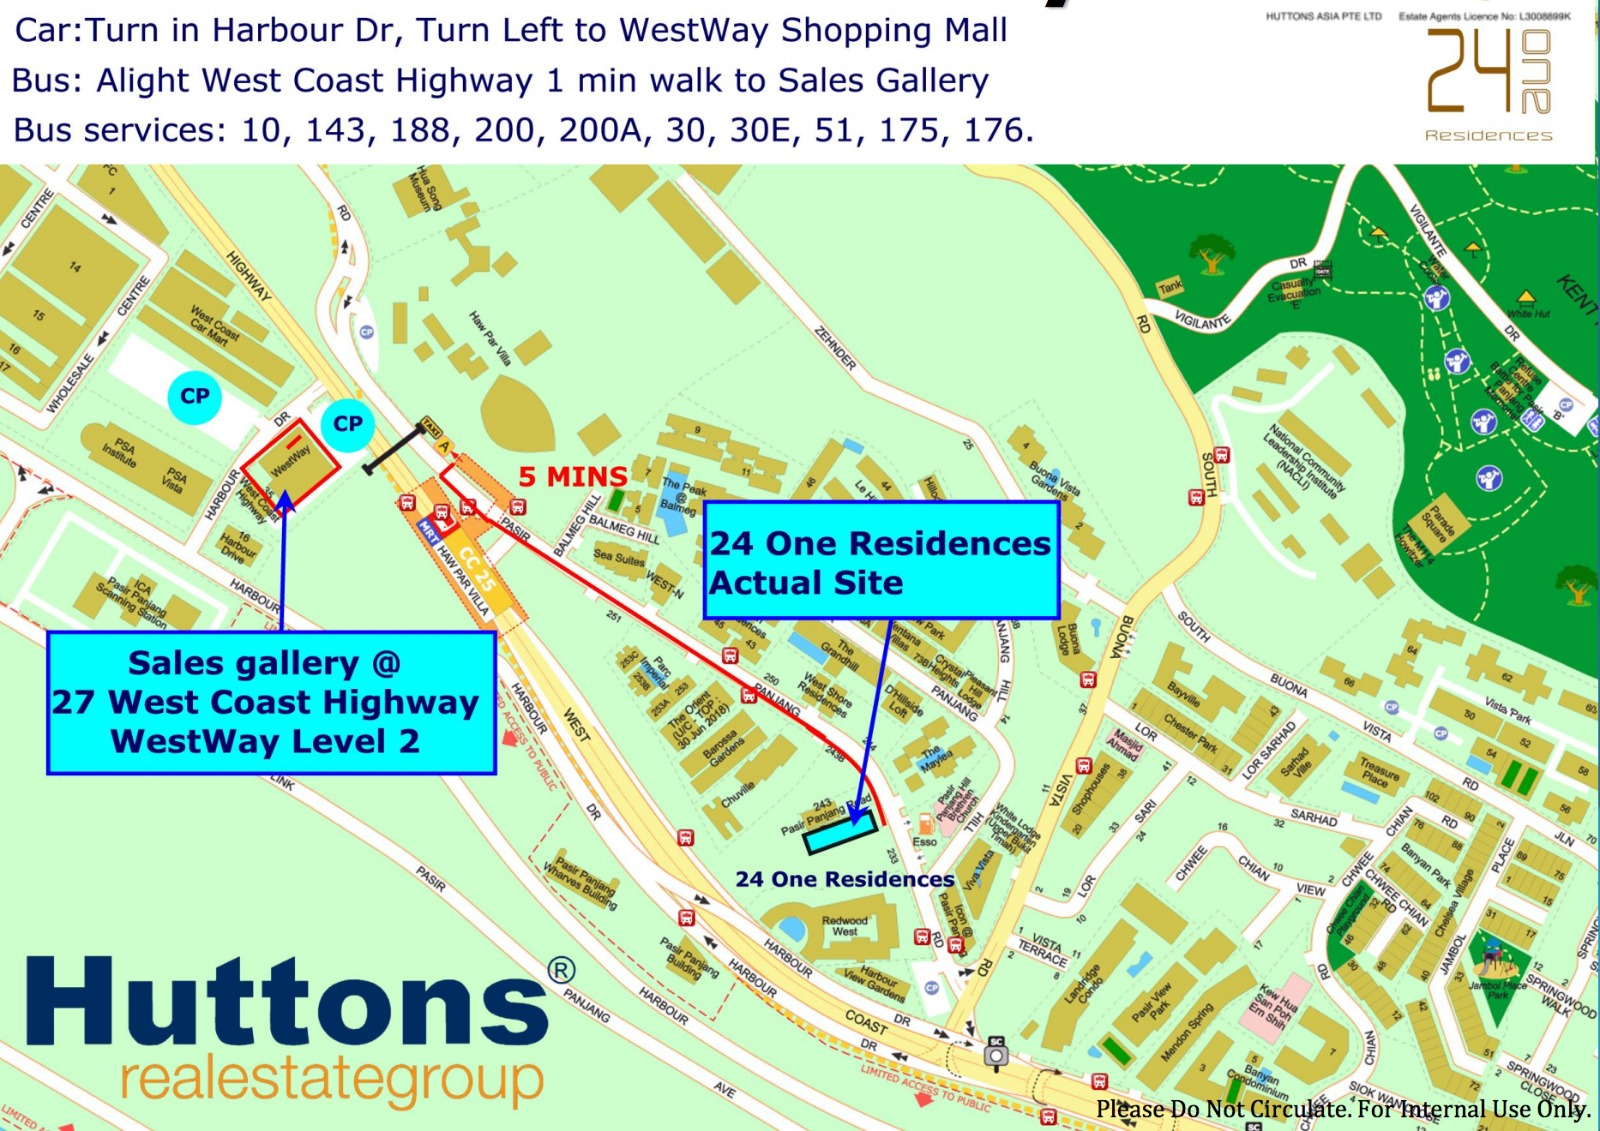 24 One Residences Location Map